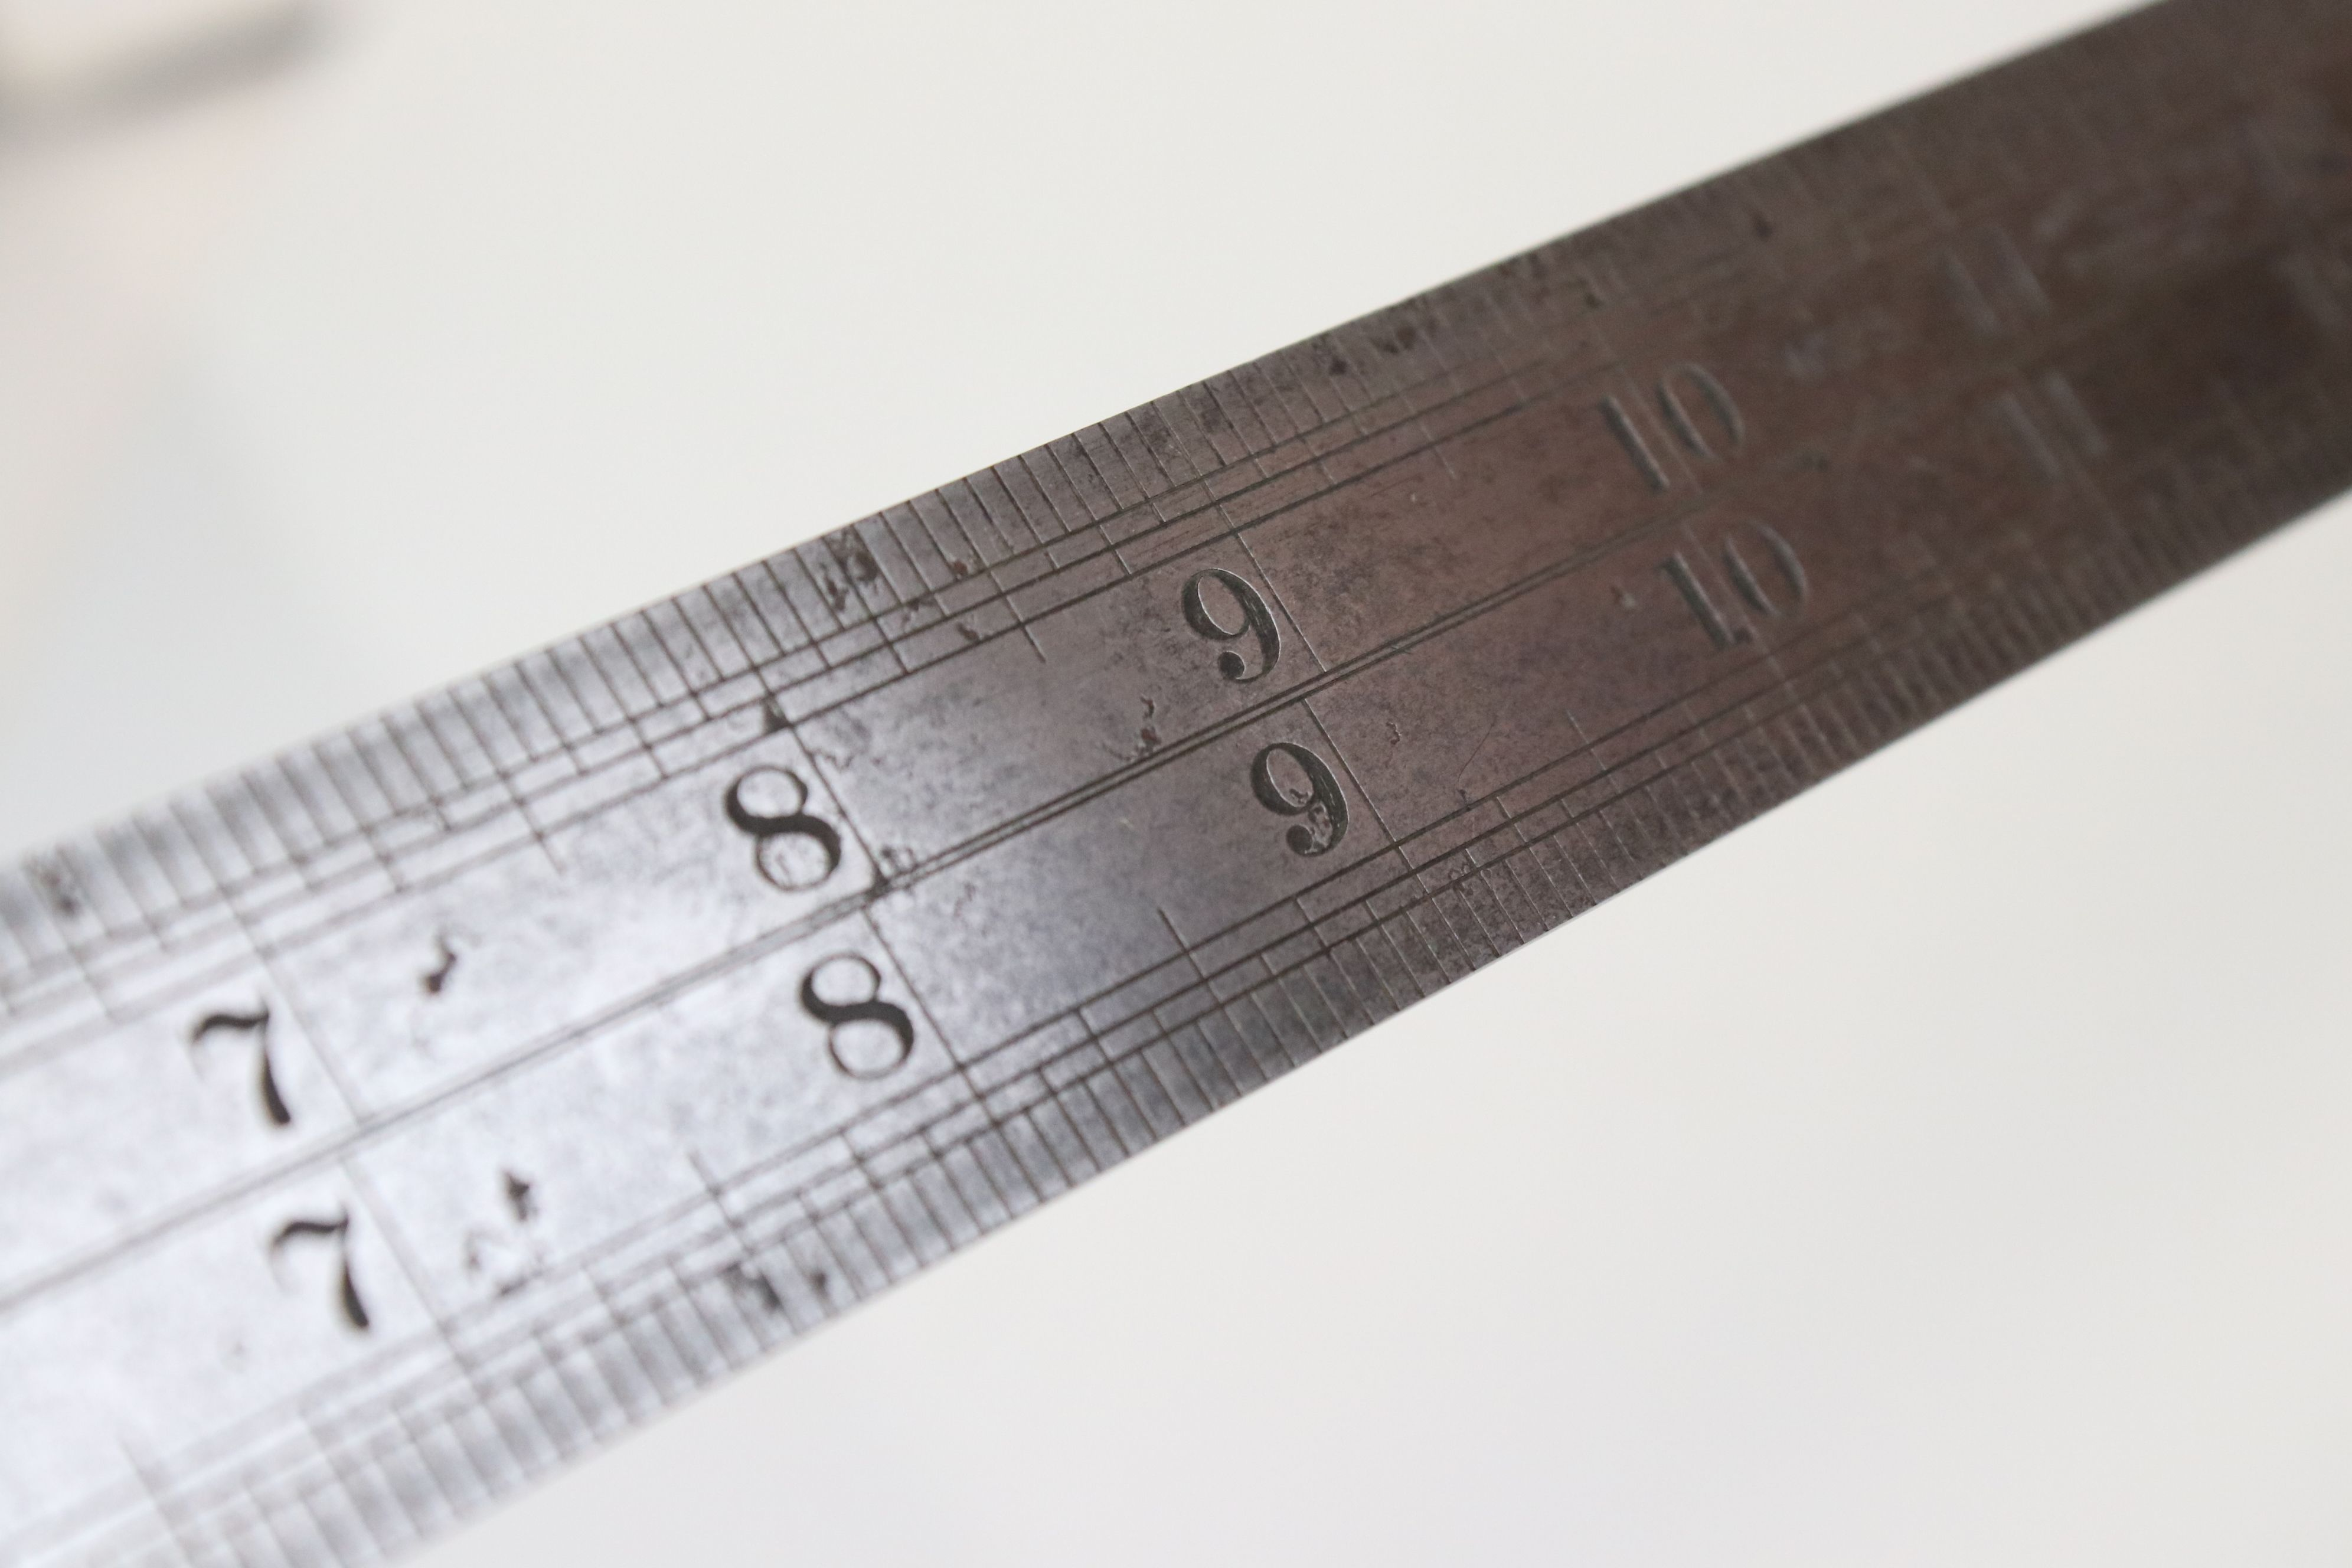 J. Rabone No.23 Steel Double Contraction / Contraction Rule, 24 inches long - Image 4 of 4